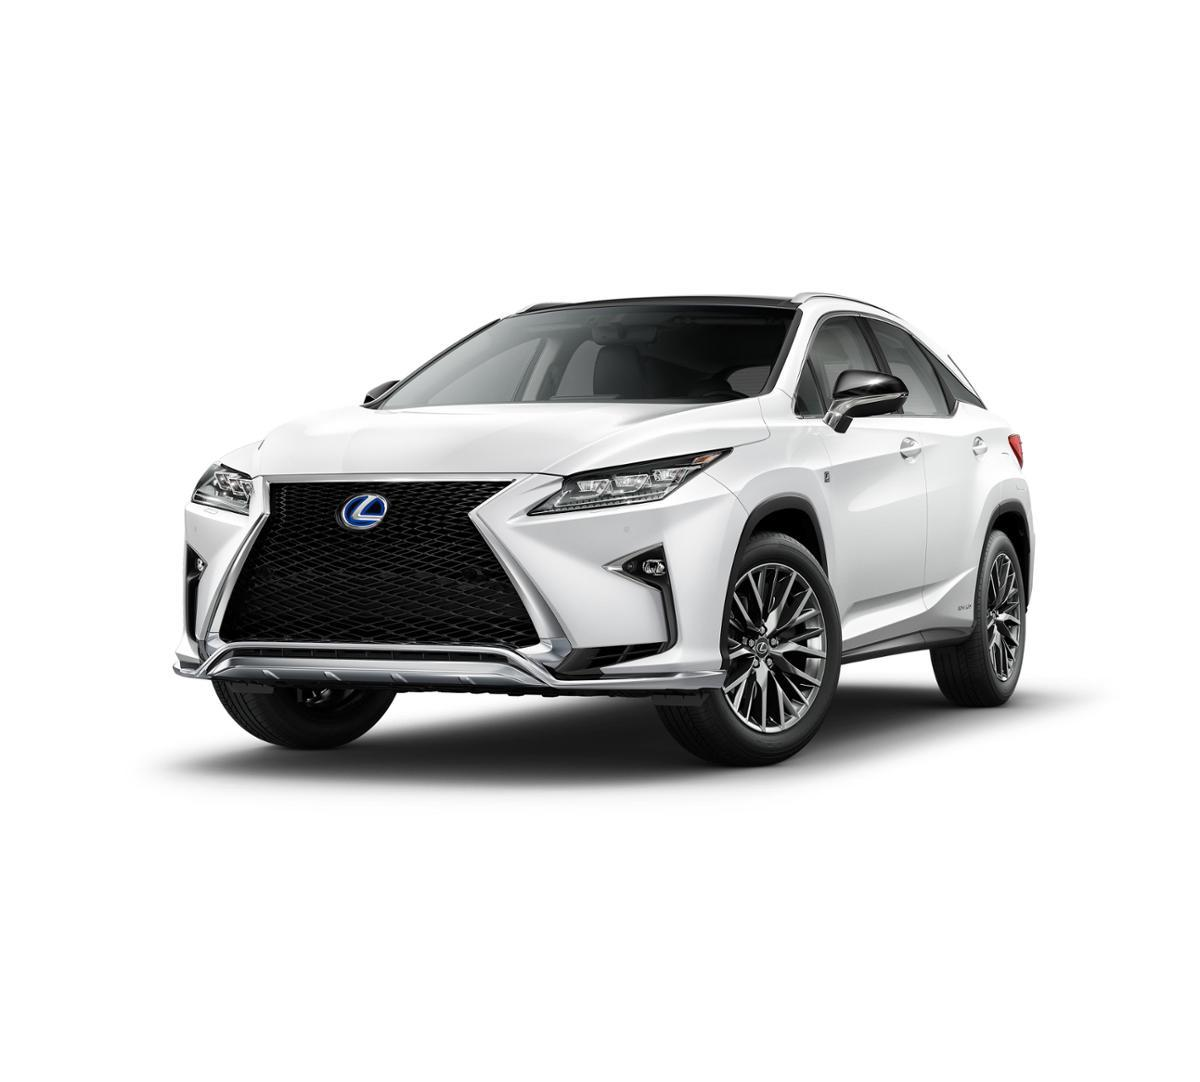 hight resolution of 2018 lexus rx 450h vehicle photo in mission viejo ca 92692